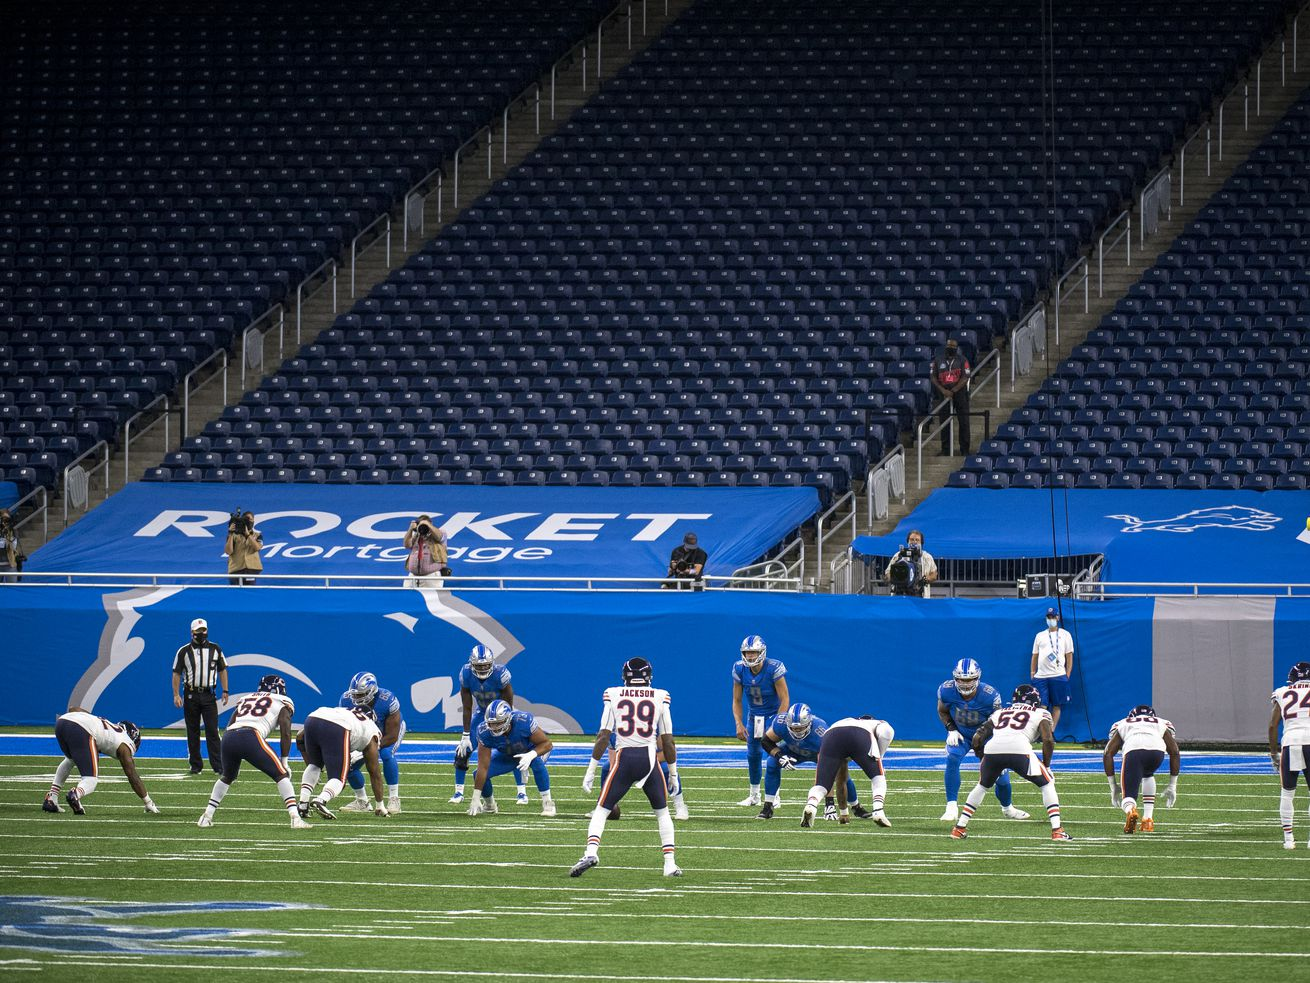 NFL issues fines for penalties during Bears' games vs. Lions, Giants